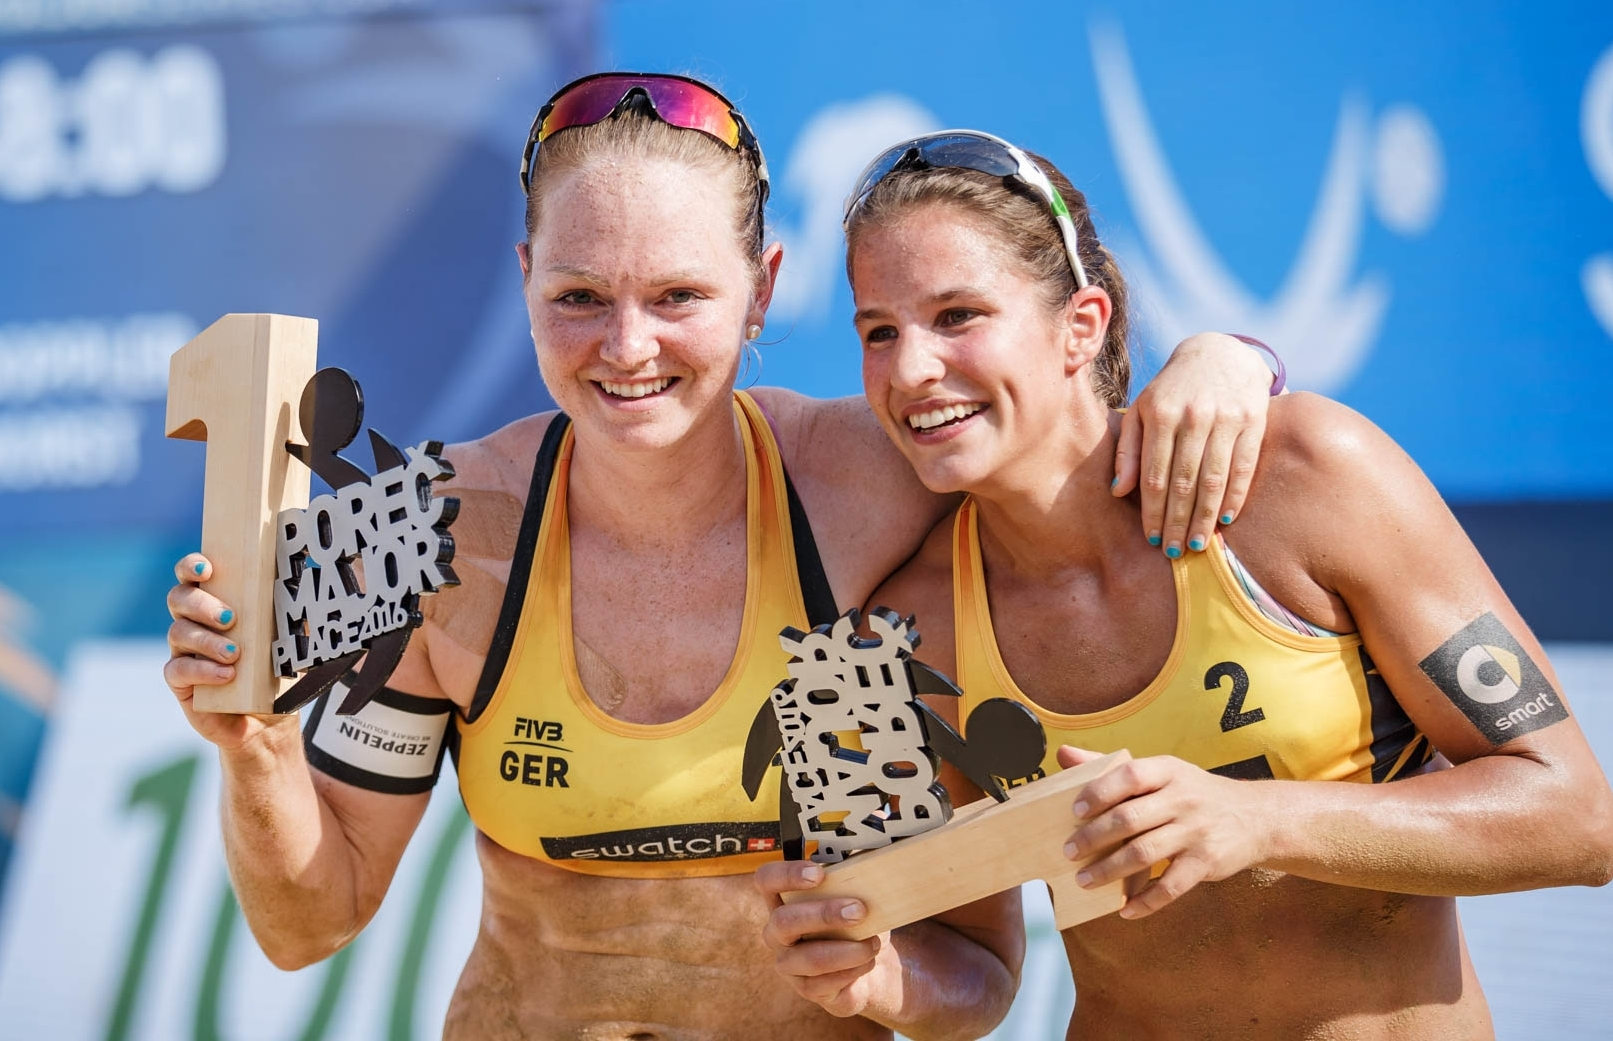 Julia and Chantal can't believe it - Gold at #PorecMajor. Photocredit: Mike Ranz